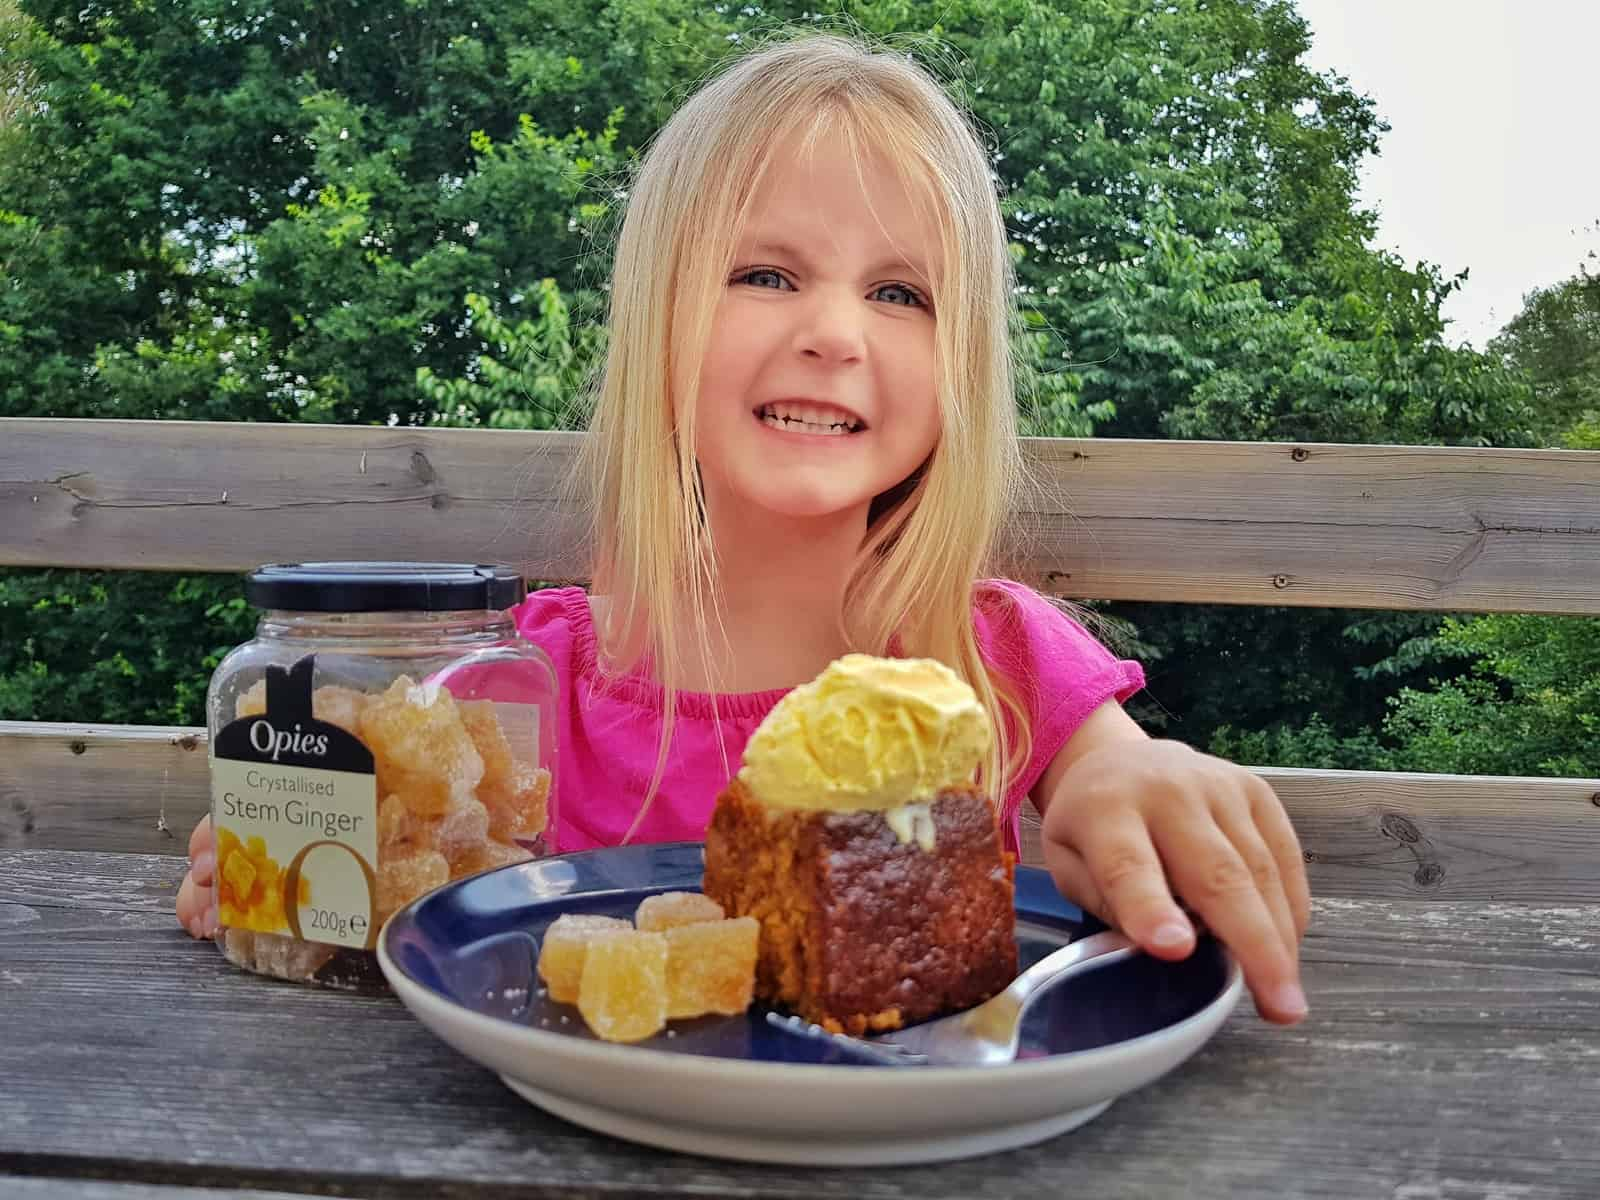 little girl with opies stem ginger cake